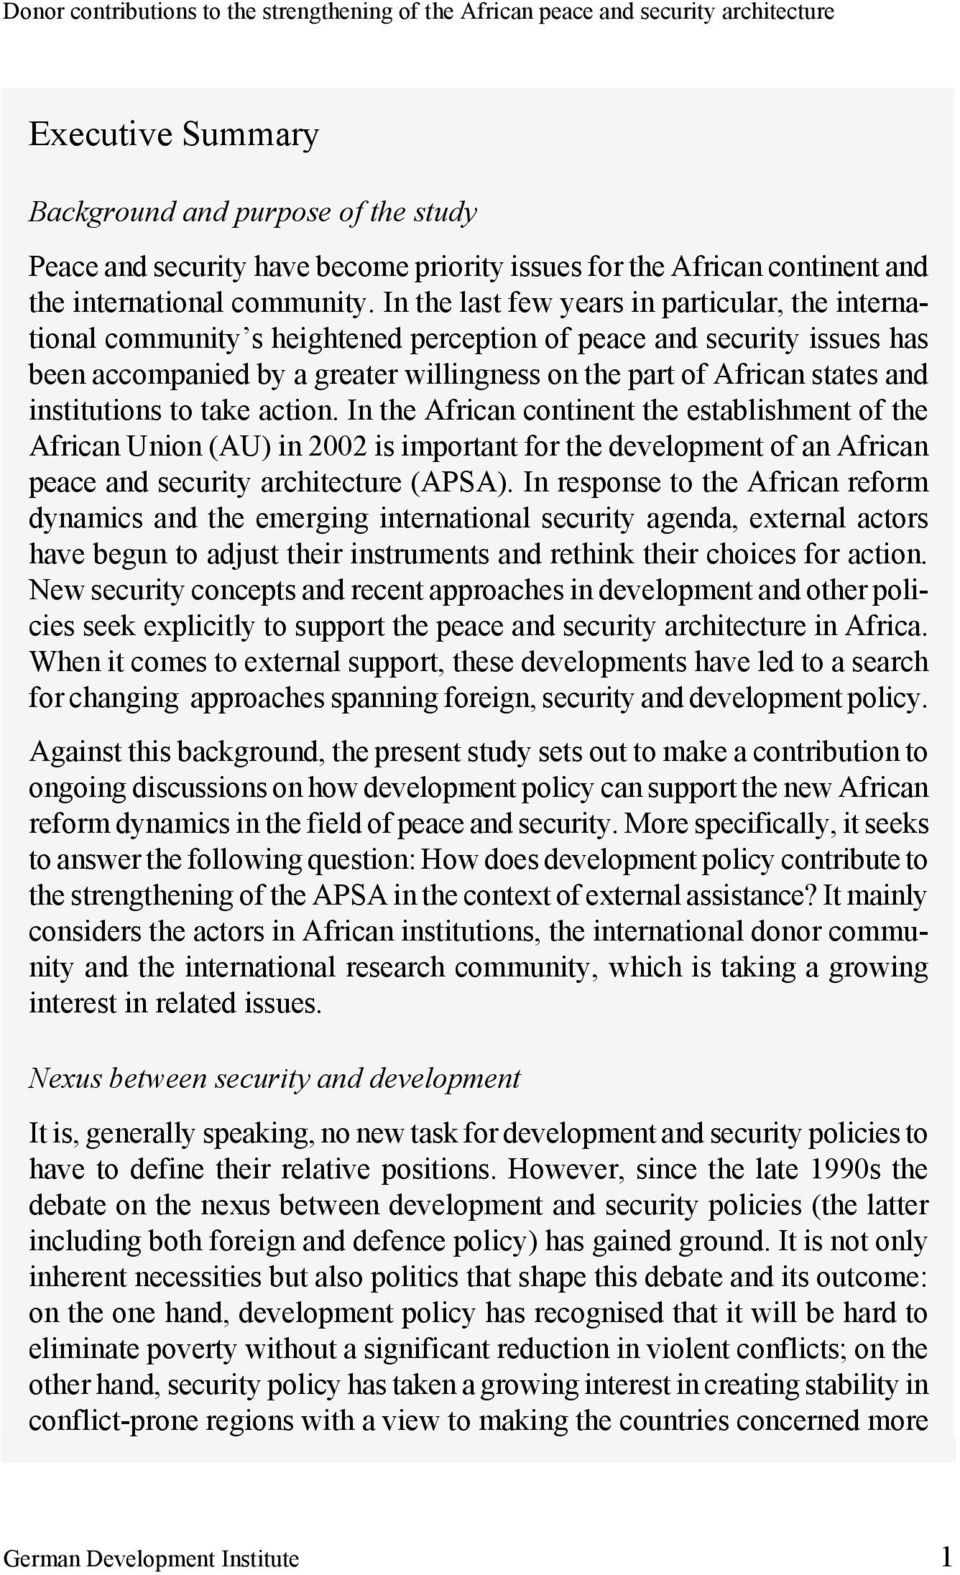 In the last few years in particular, the international community s heightened perception of peace and security issues has been accompanied by a greater willingness on the part of African states and